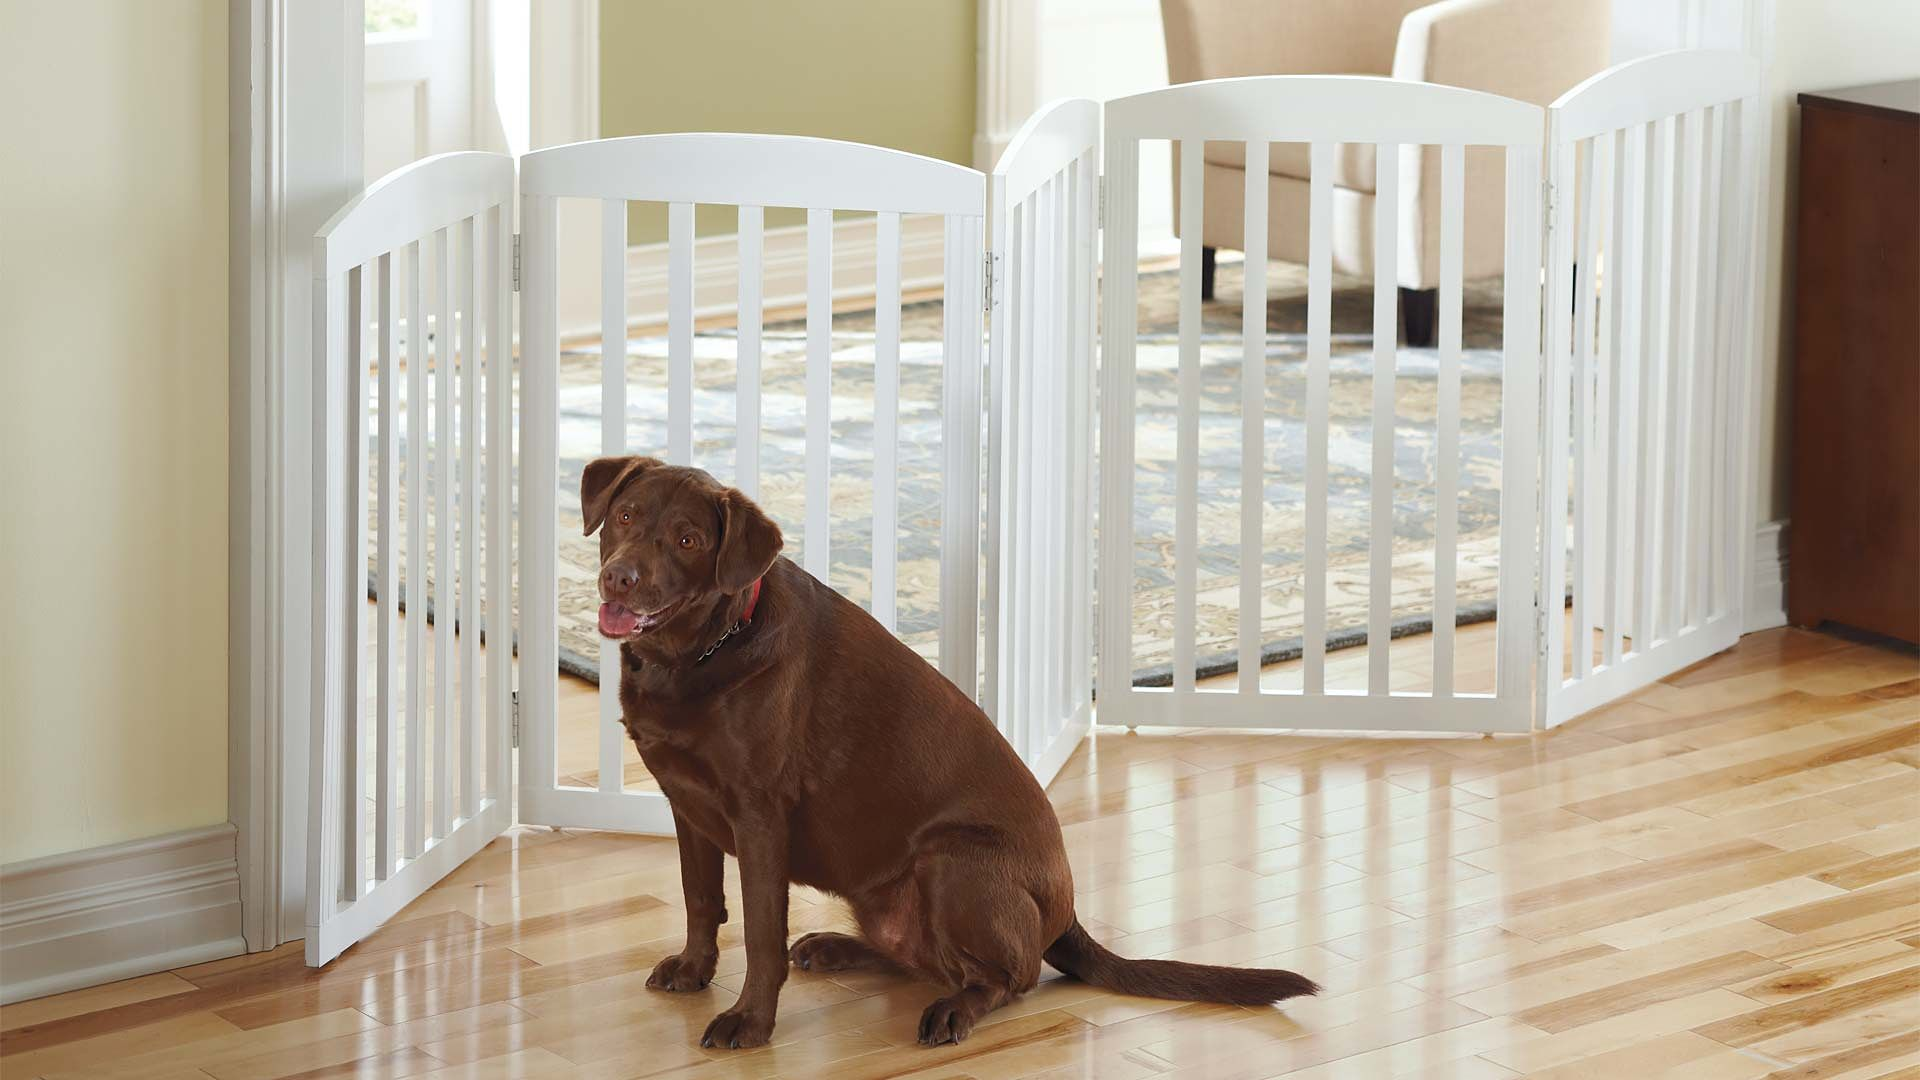 This beautifully crafted Freestanding Wooden Pet Gate is unlike the cumbersome gates of the past. Our solid mahogany gate limits your pet's access to certain areas of your home without creating the distraction of an imposing blockade.